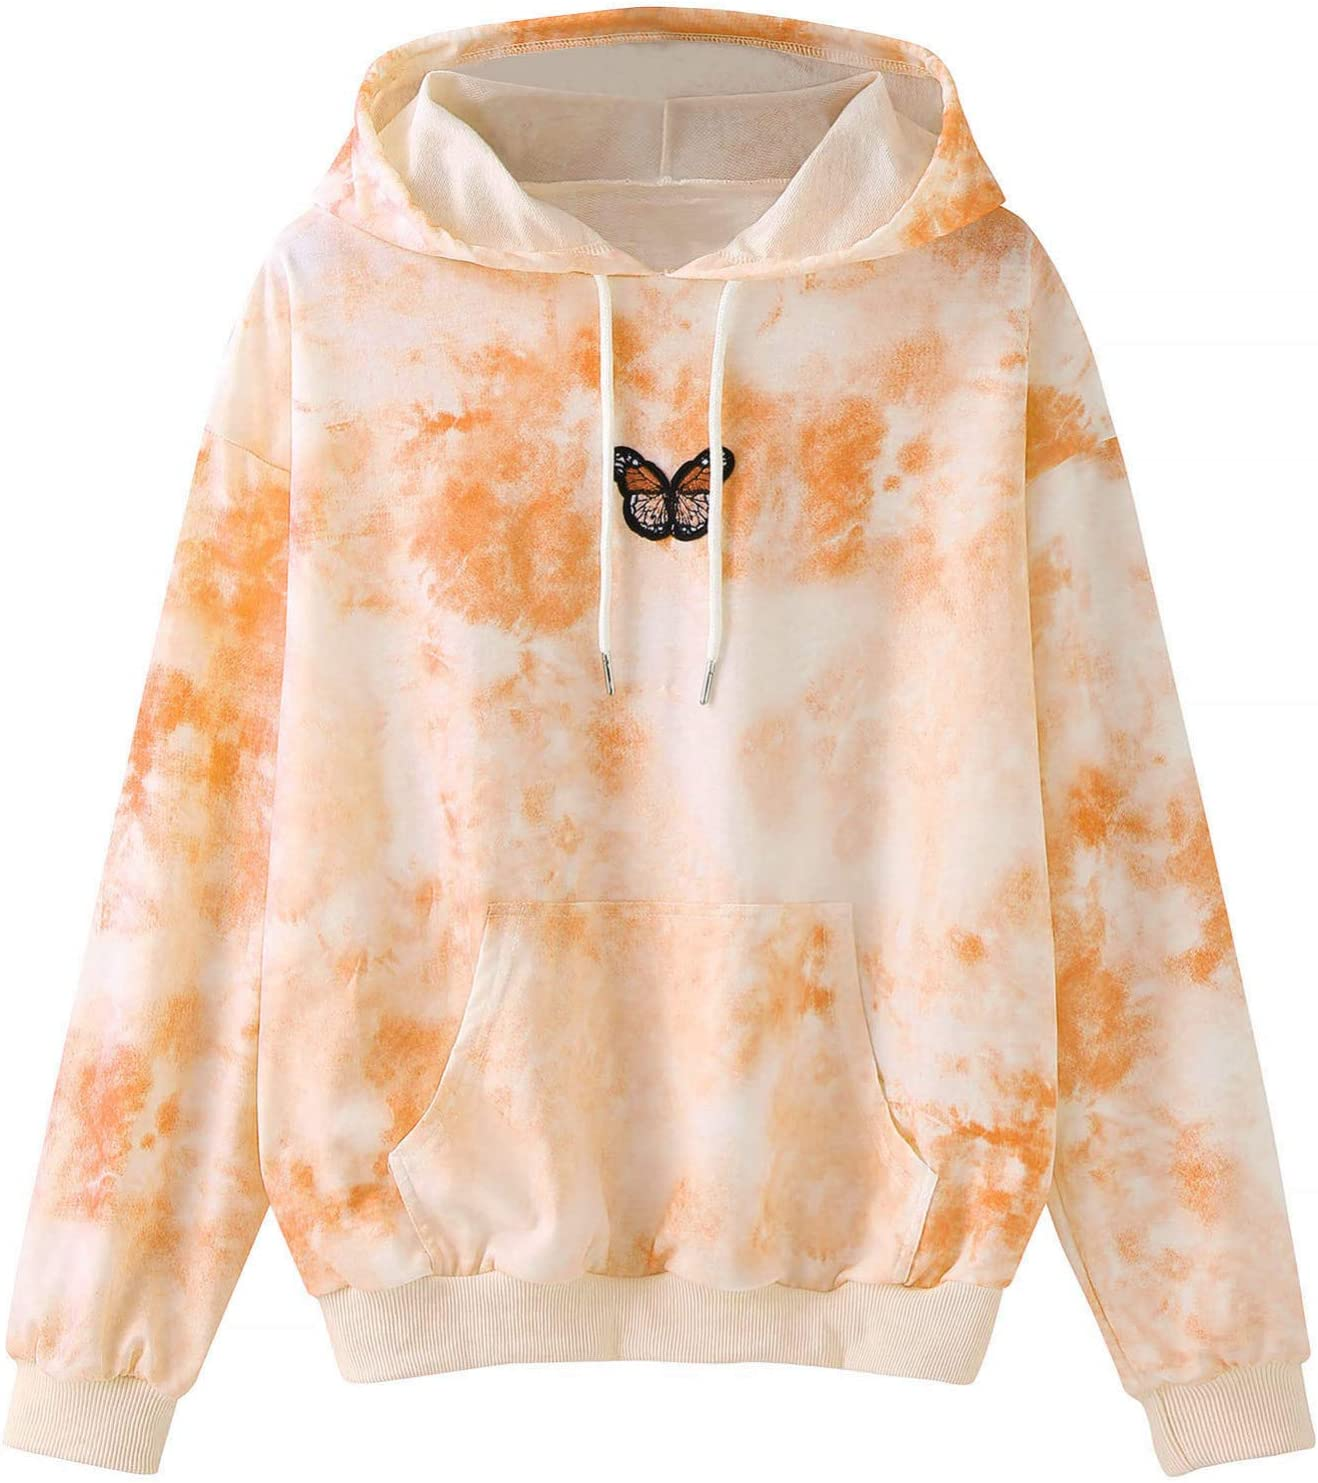 Eoailr Hoodies for Special sale item Women Teen Girls Hooded Dye Tie Drawstring Pu All stores are sold